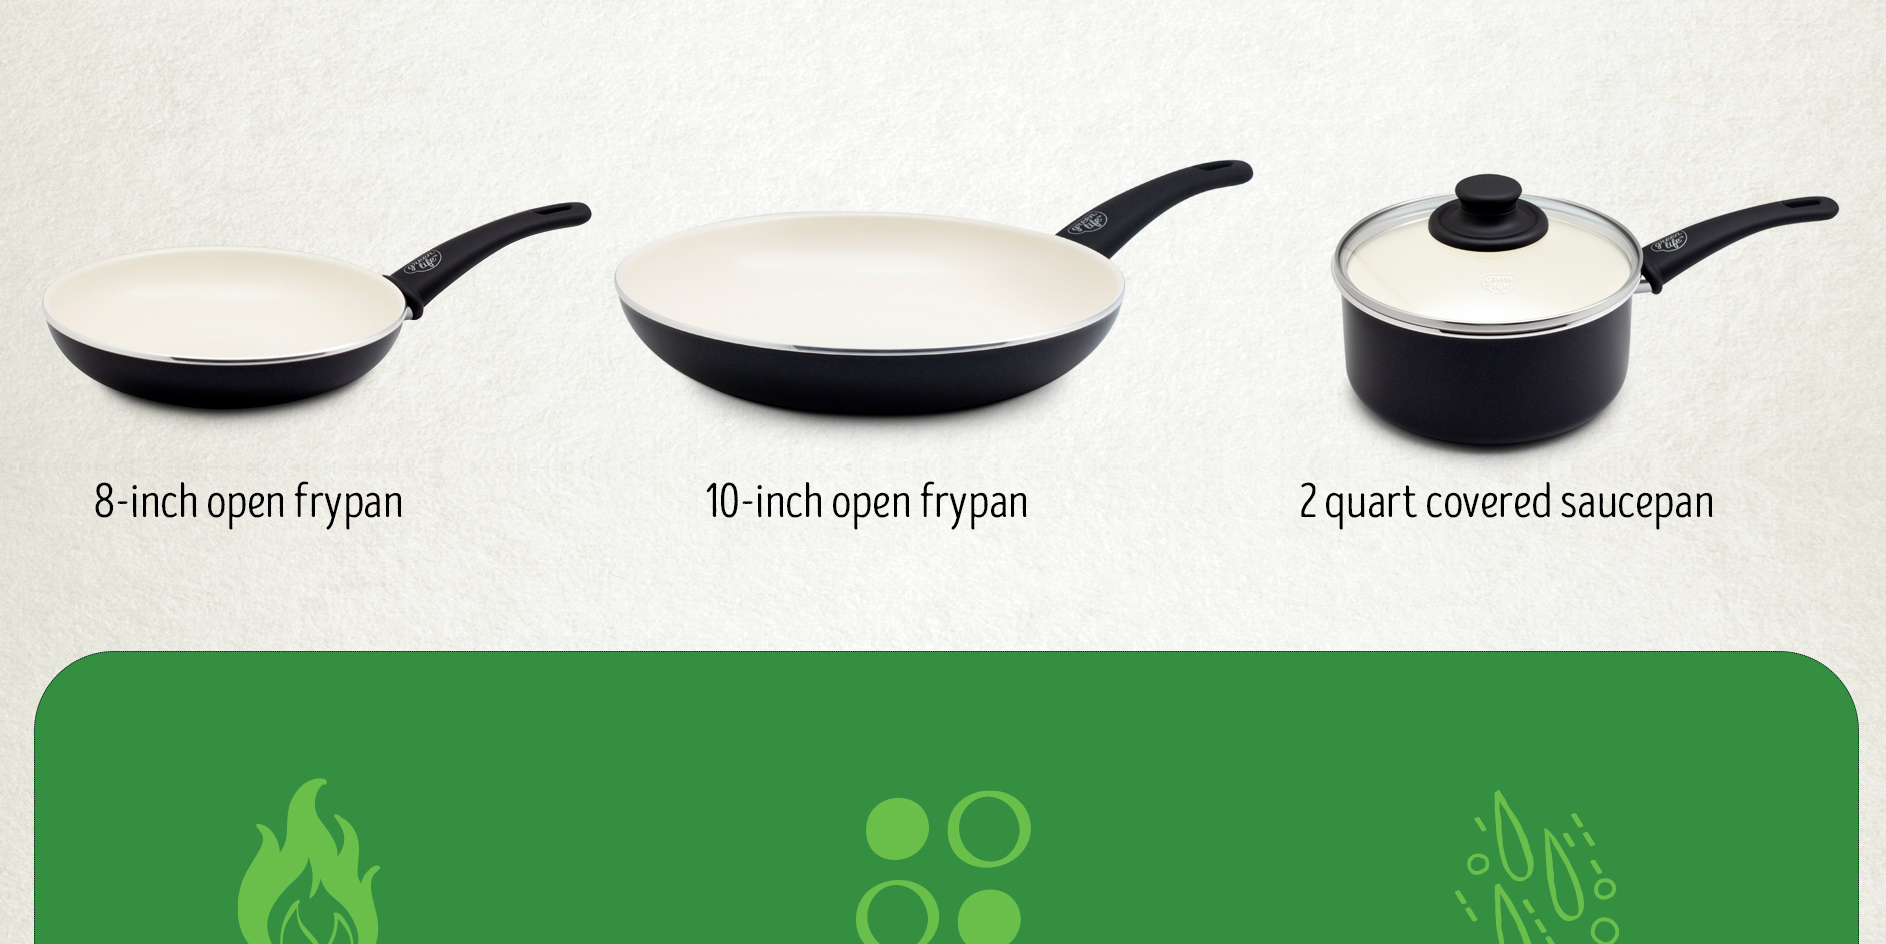 GreenLife's Ceramic Cookware Set w/ rubber handle holders is yours for $20 (Reg. up to $60) - 9to5Toys